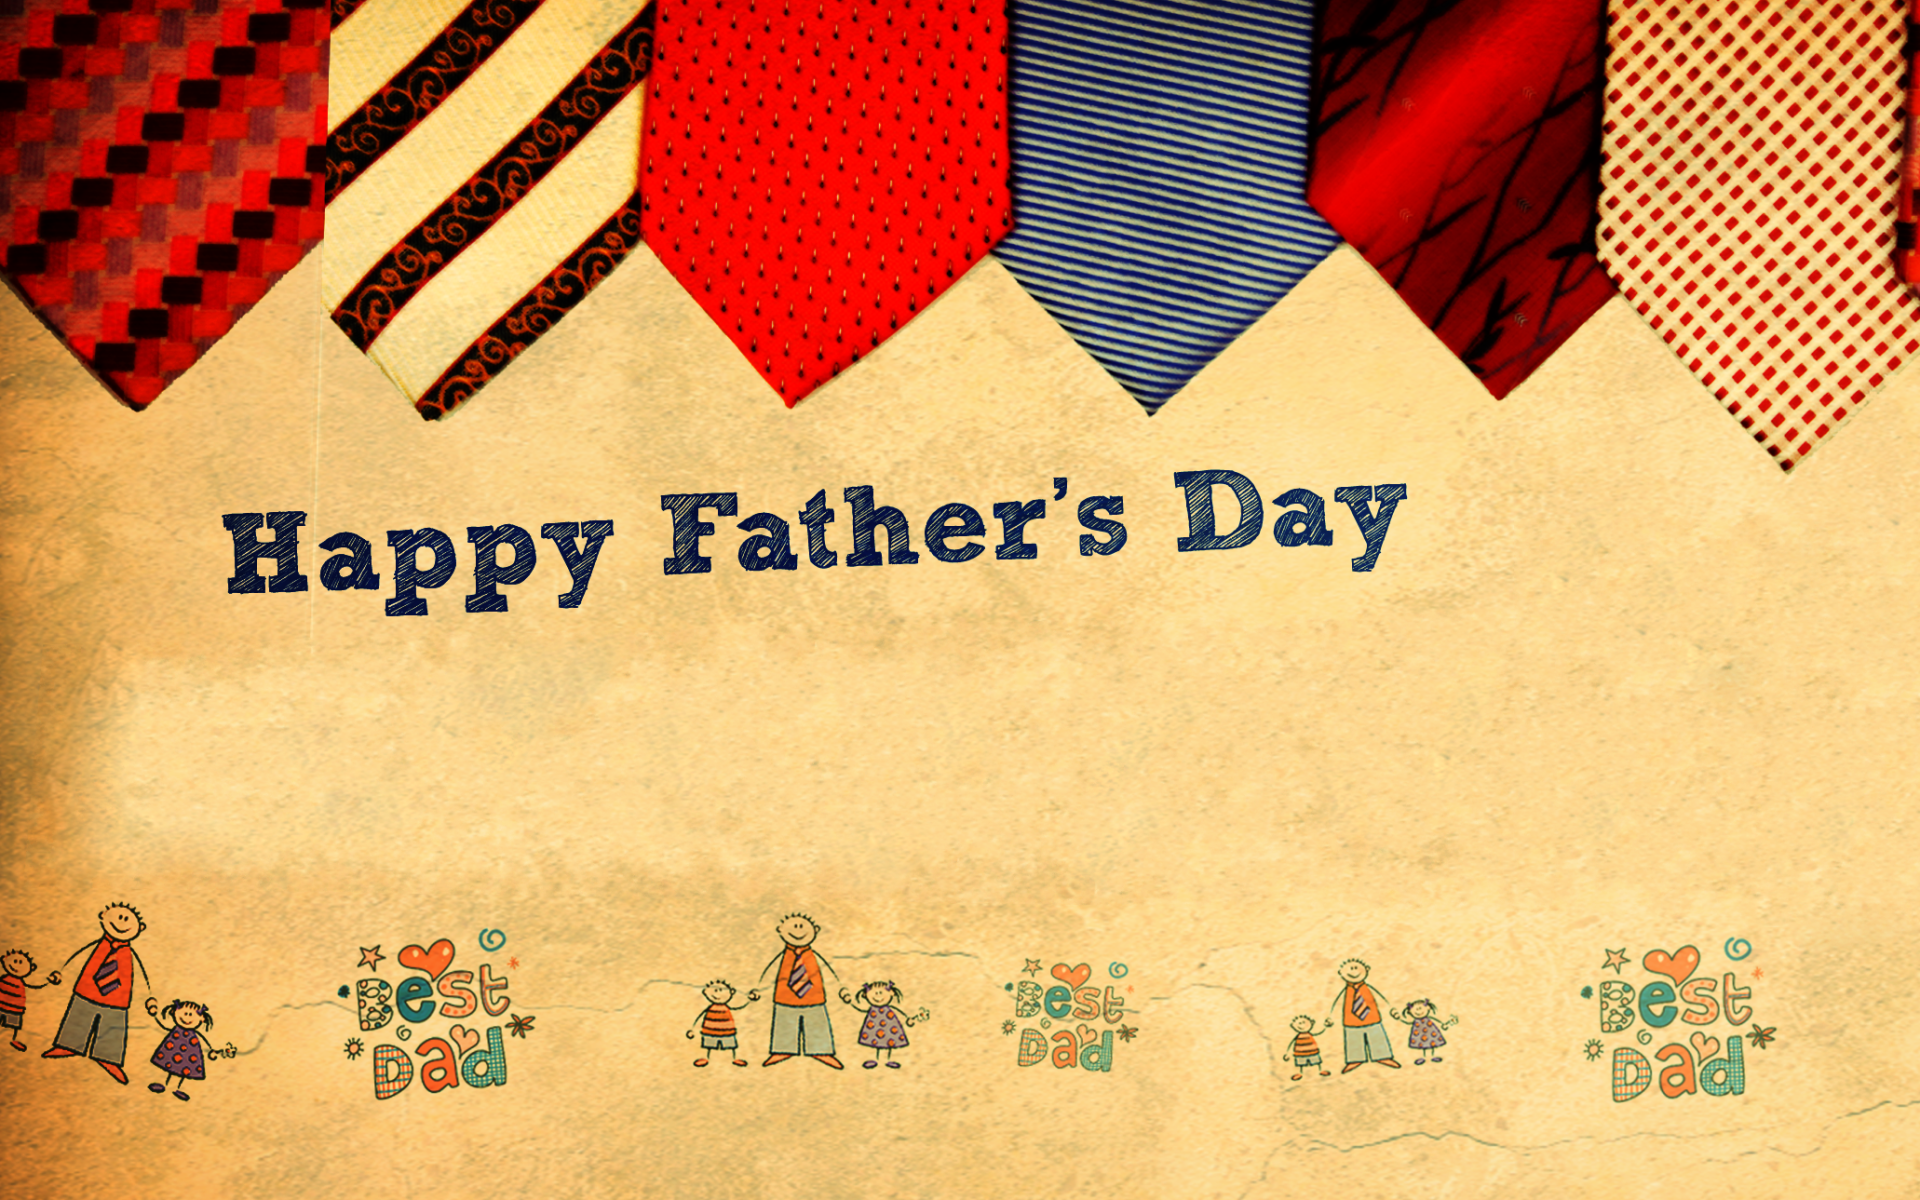 Holiday - Father's Day  Wallpaper